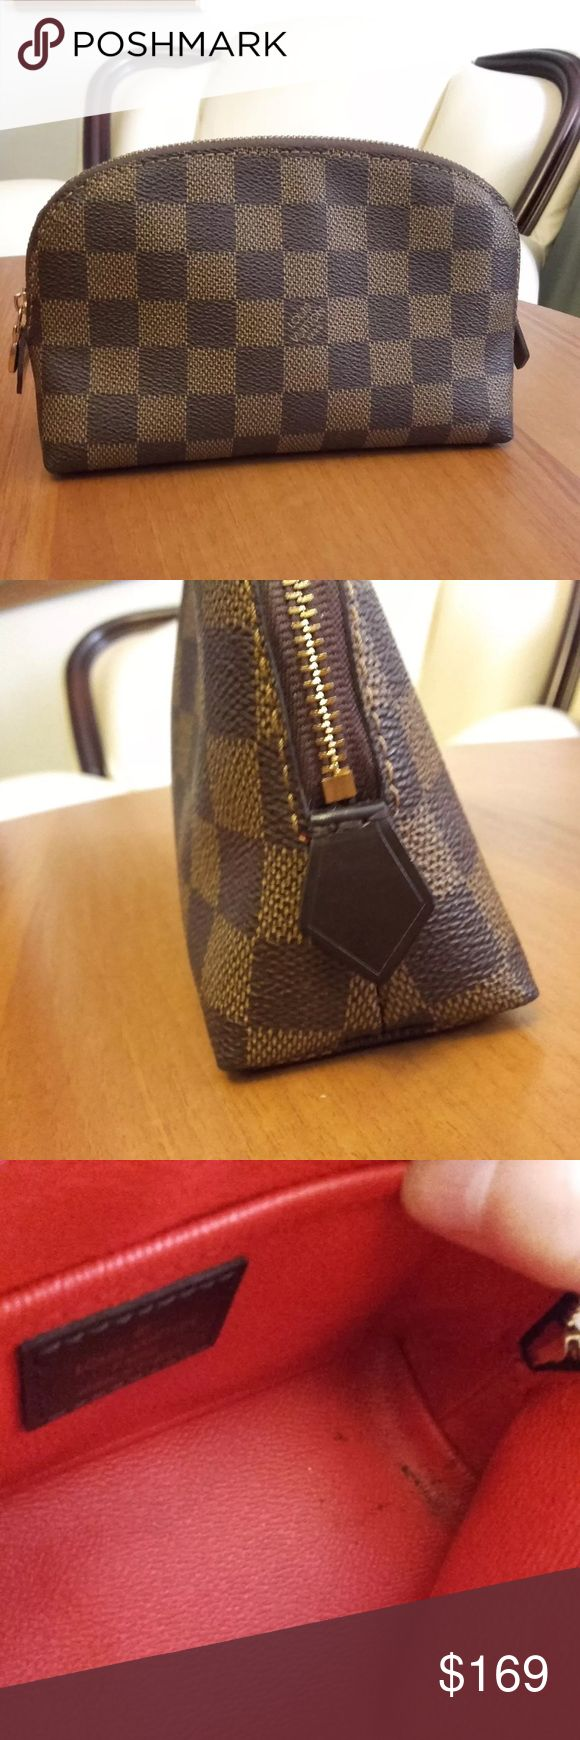 louis vuitton used bags. louis vuitton\u0027s damier cosmetic bag has been used but if u want to buy text vuitton bags r